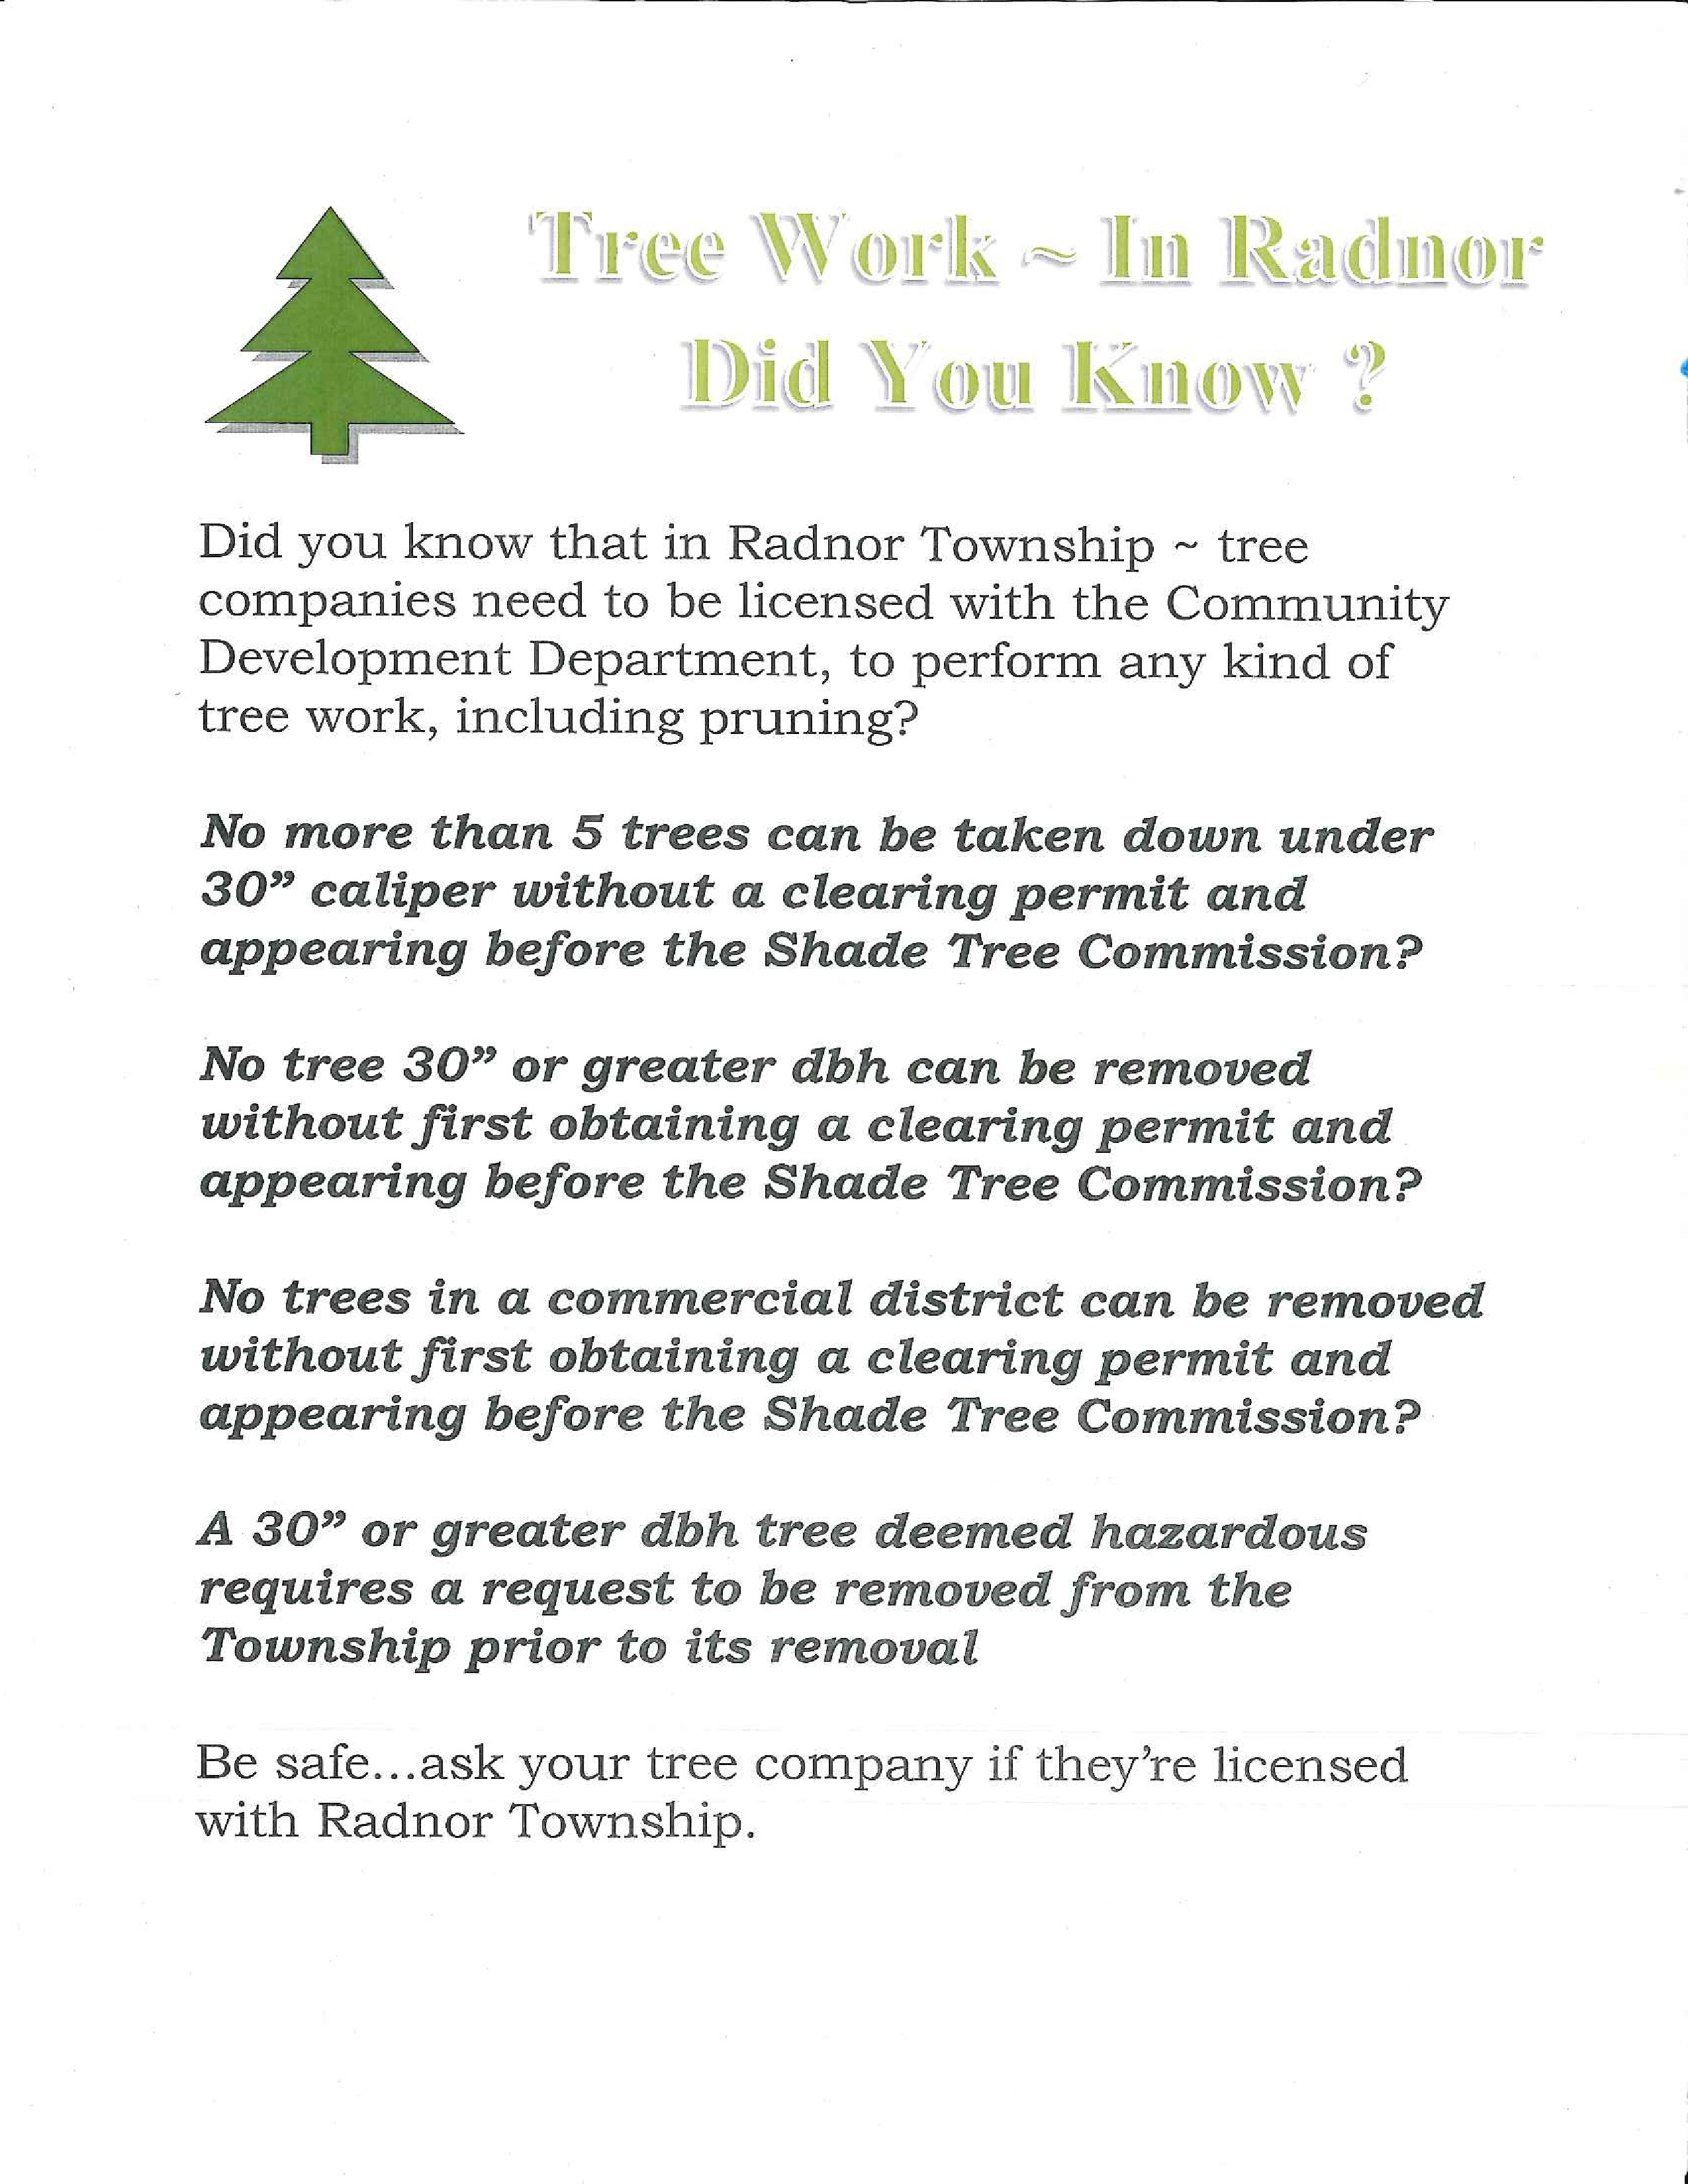 Tree Work Did You Know_201502111356232507-page-0